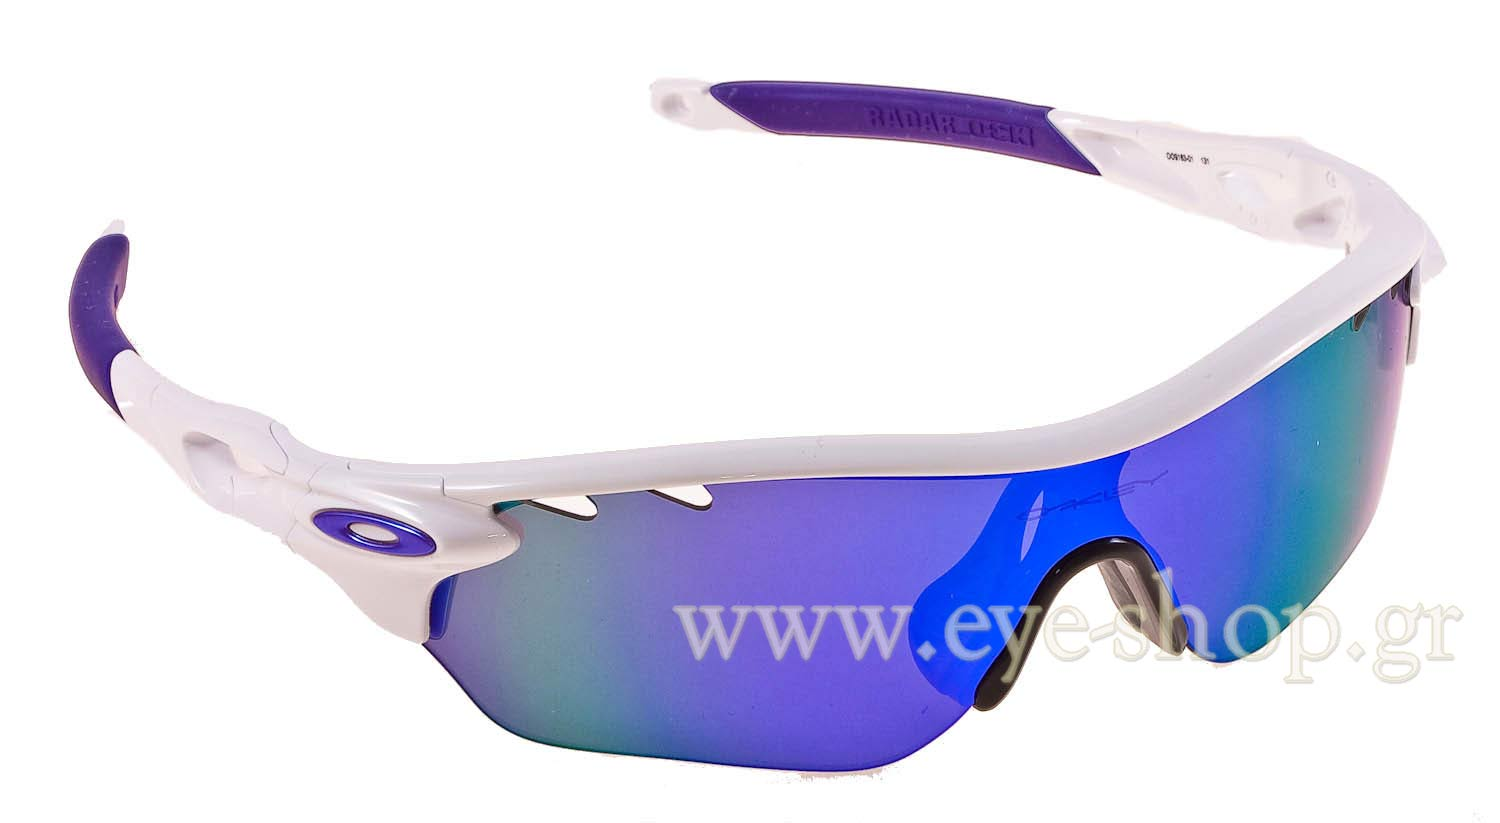 Γυαλιά Oakley Radarlock Edge 9183 9183 01 violet iridium